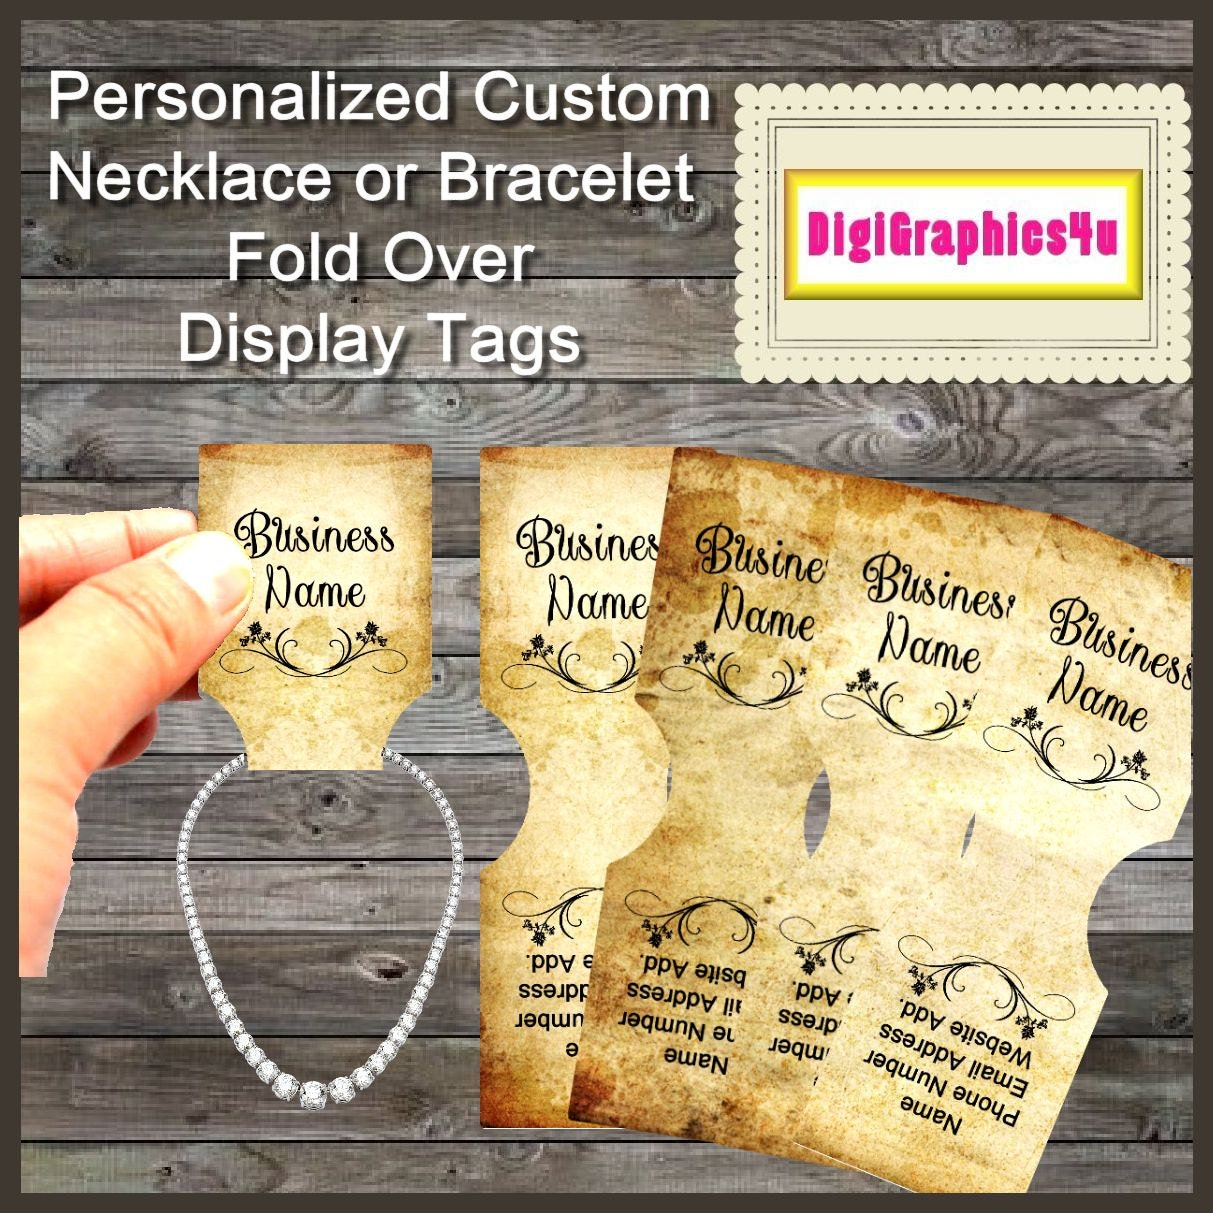 Custom Jewelry Tags Weathered Inspired For Necklace Or